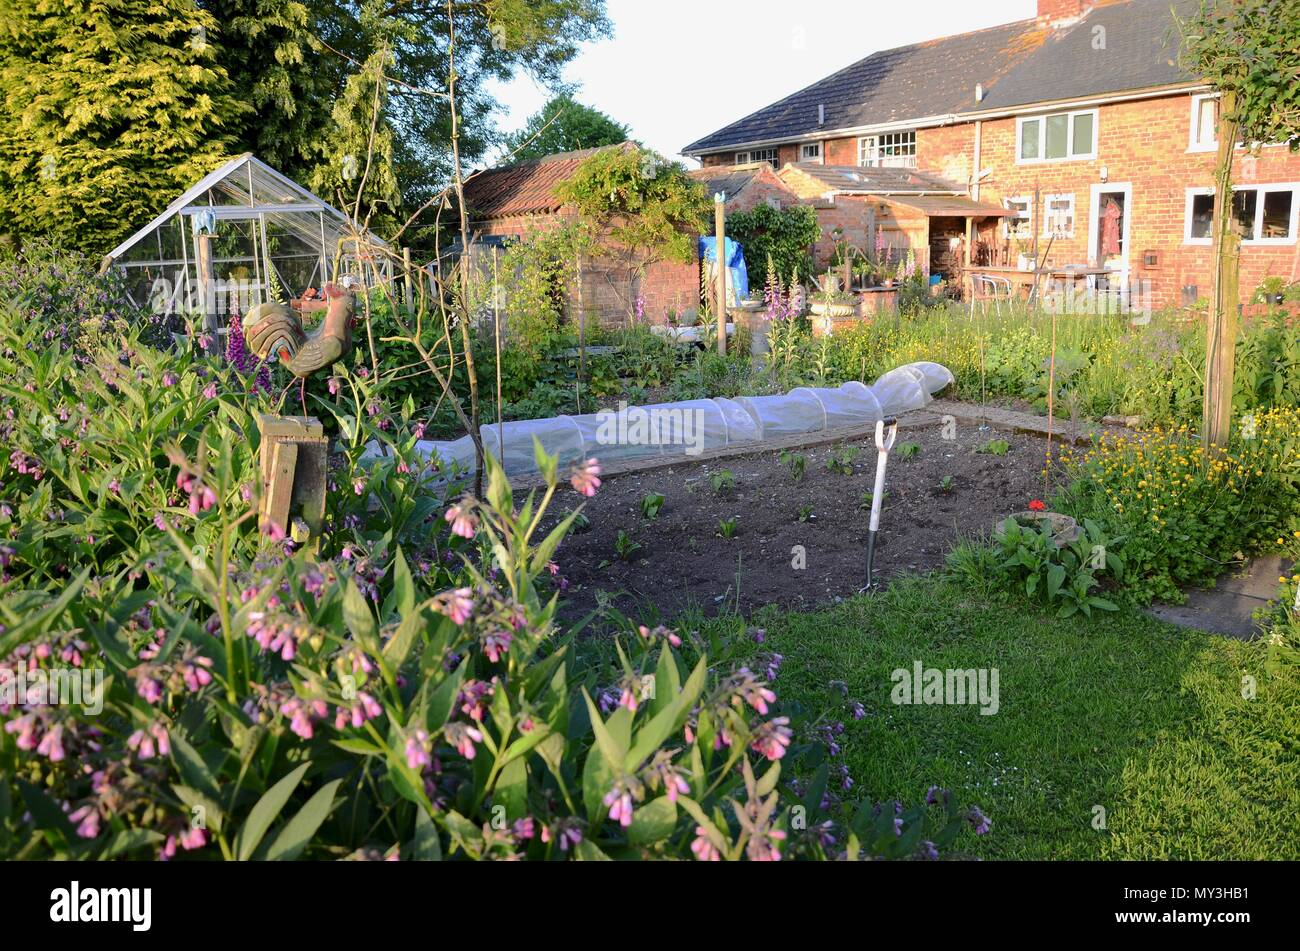 Mixed Vegetable Garden At Rear Of English Cottage UK Stock Photo